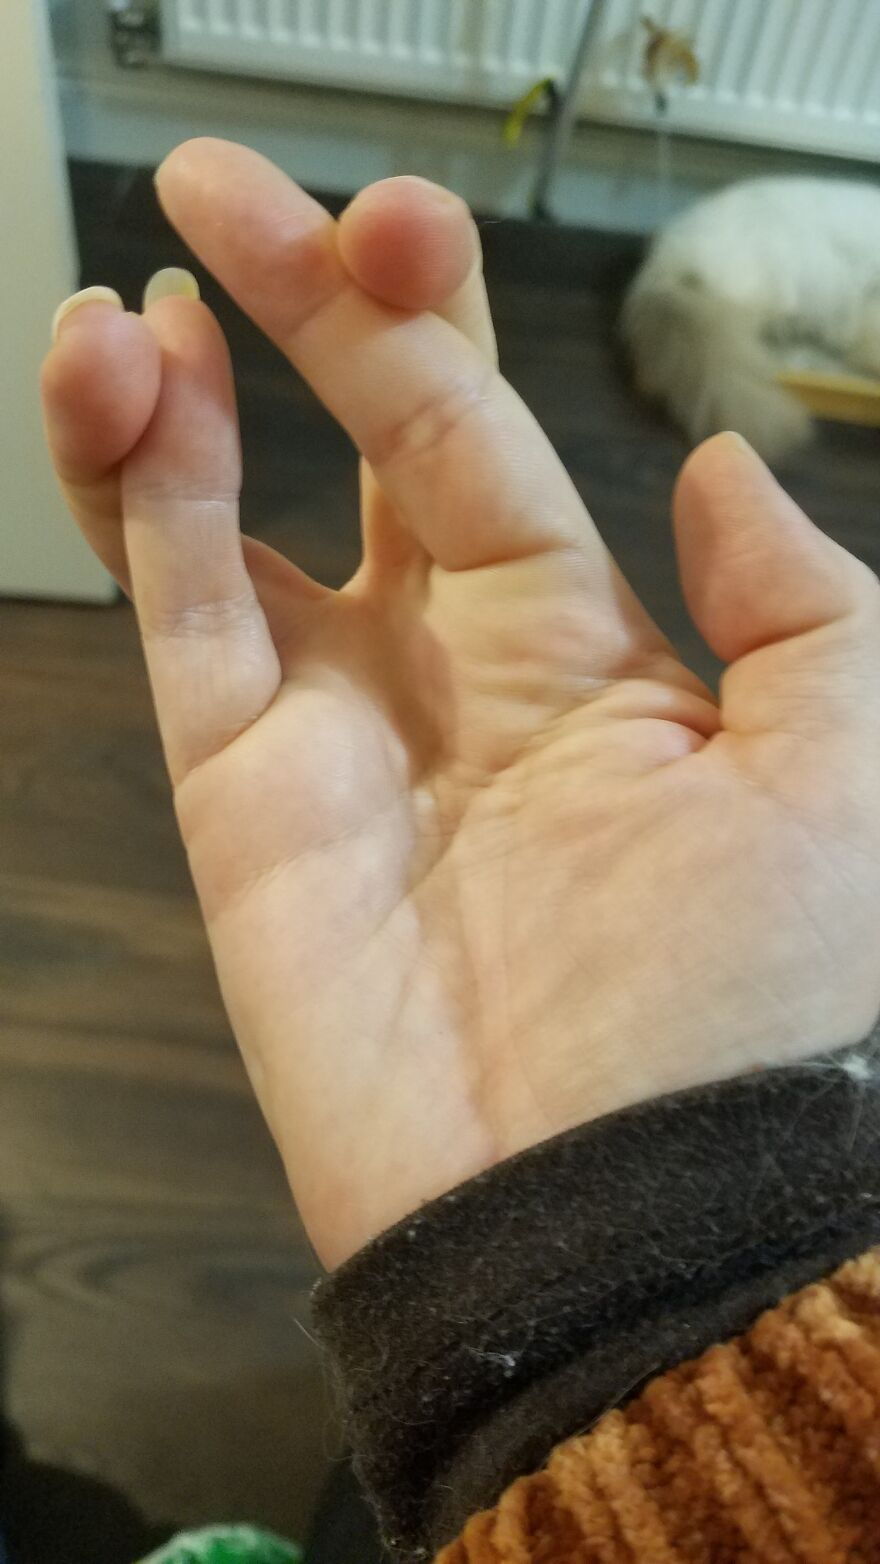 I Can Cross Both Pairs Of Fingers Simultaneously, And On Both Hands At The Same Time